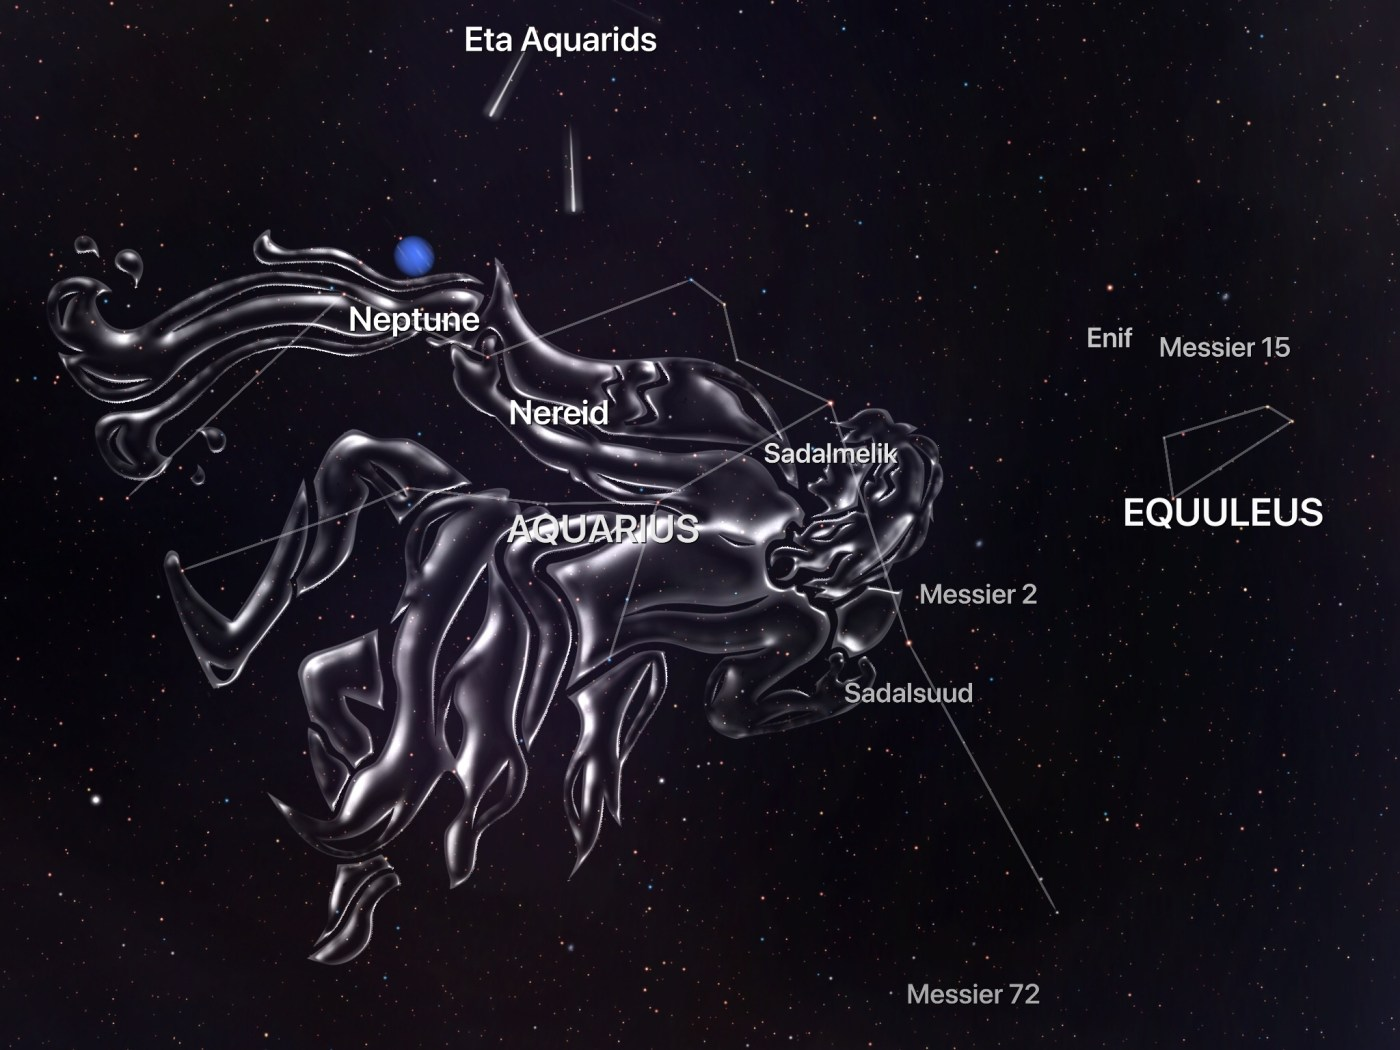 A screenshot from The Night Sky app that features the Aquarius constellation